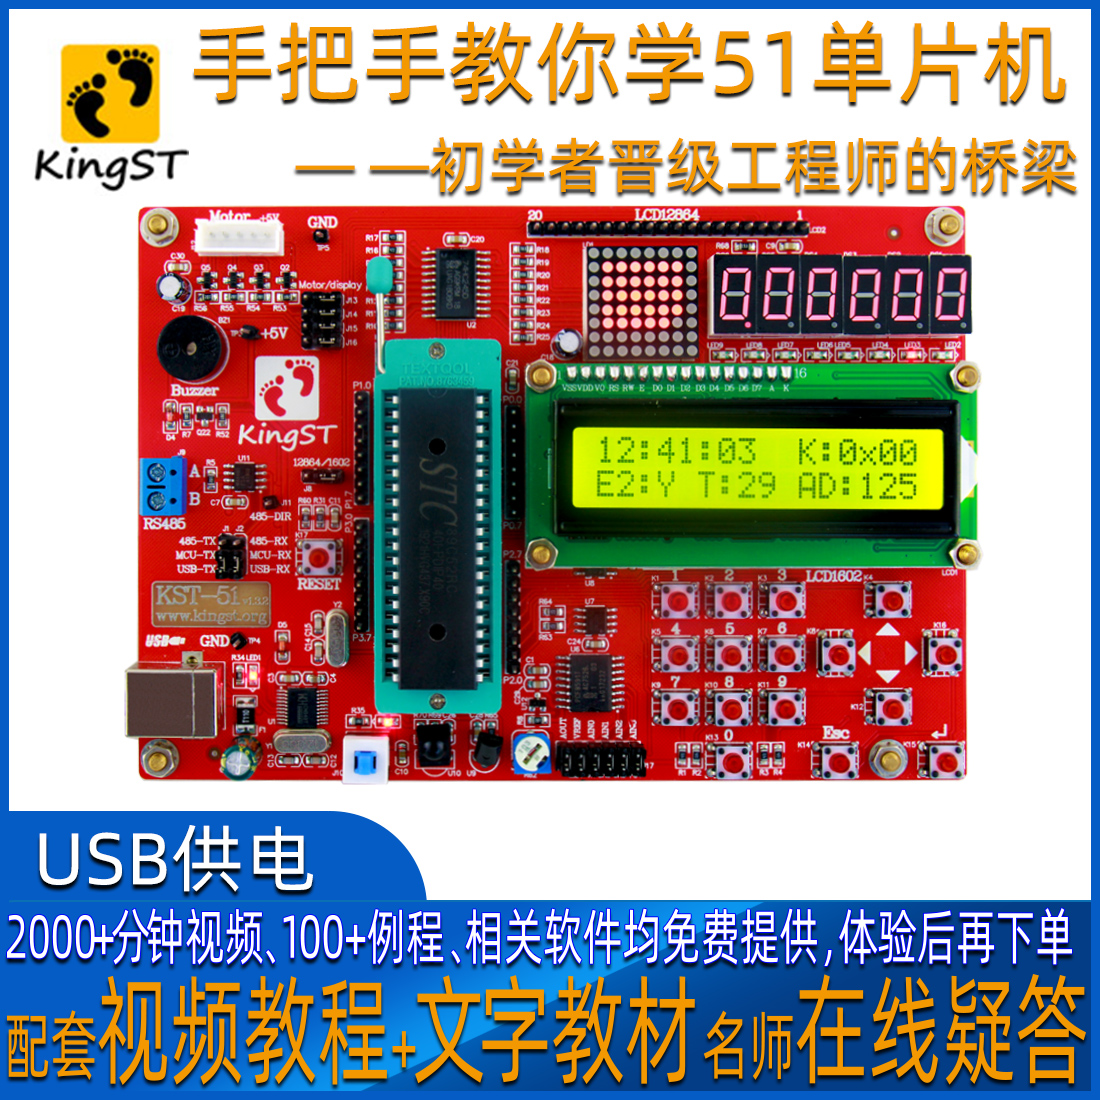 Hands-on teach you to learn single chip (Golden Beach official shop) KST-51 single chip development board learning board